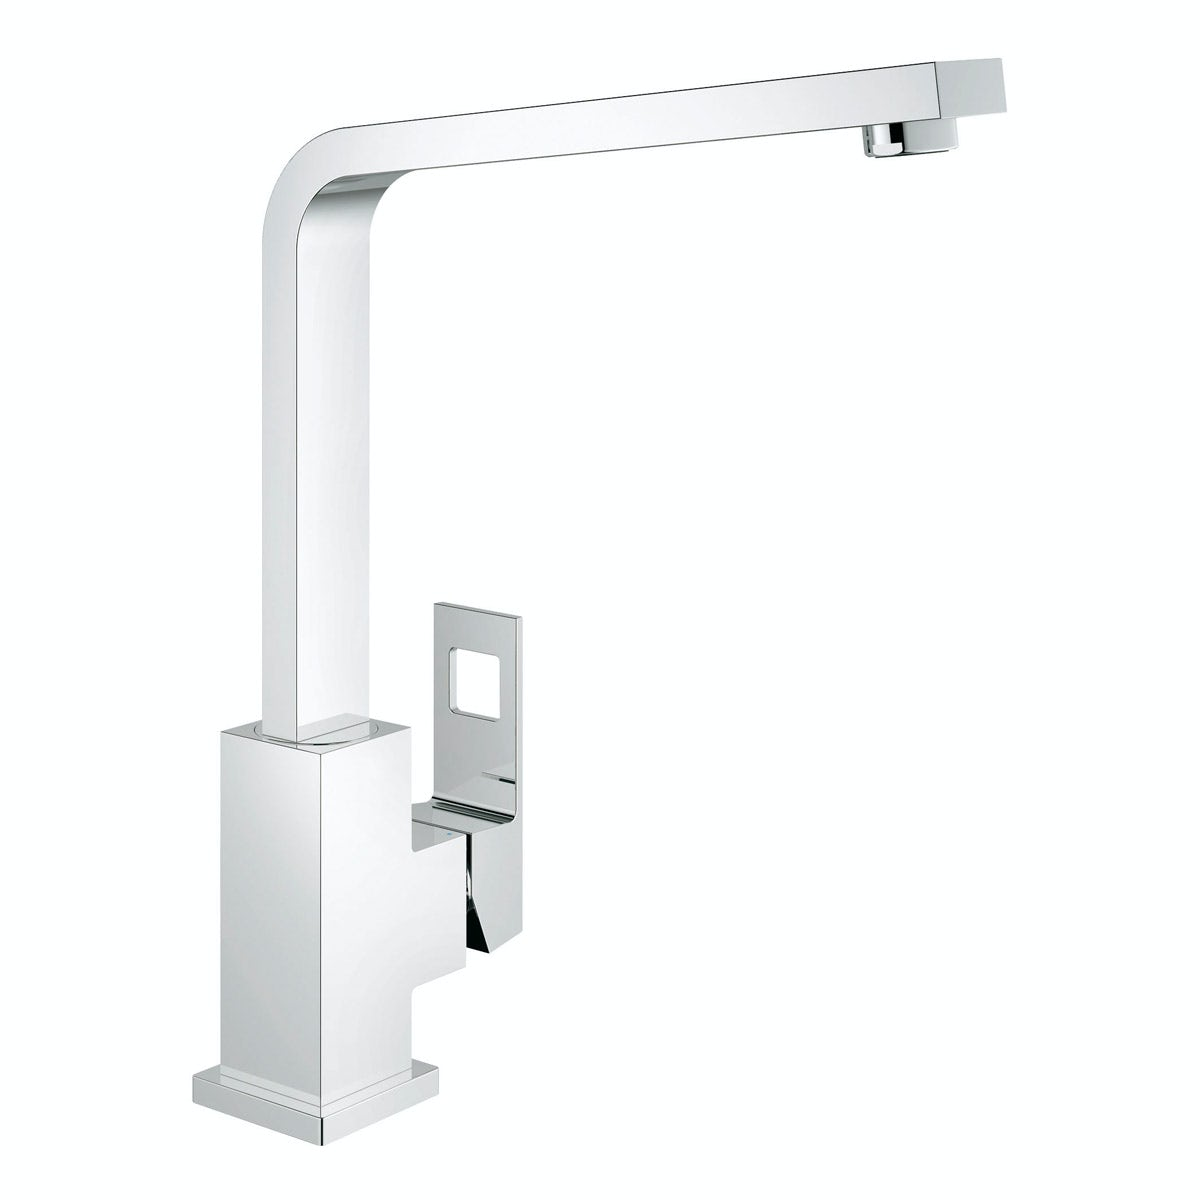 Grohe Eurocube kitchen tap